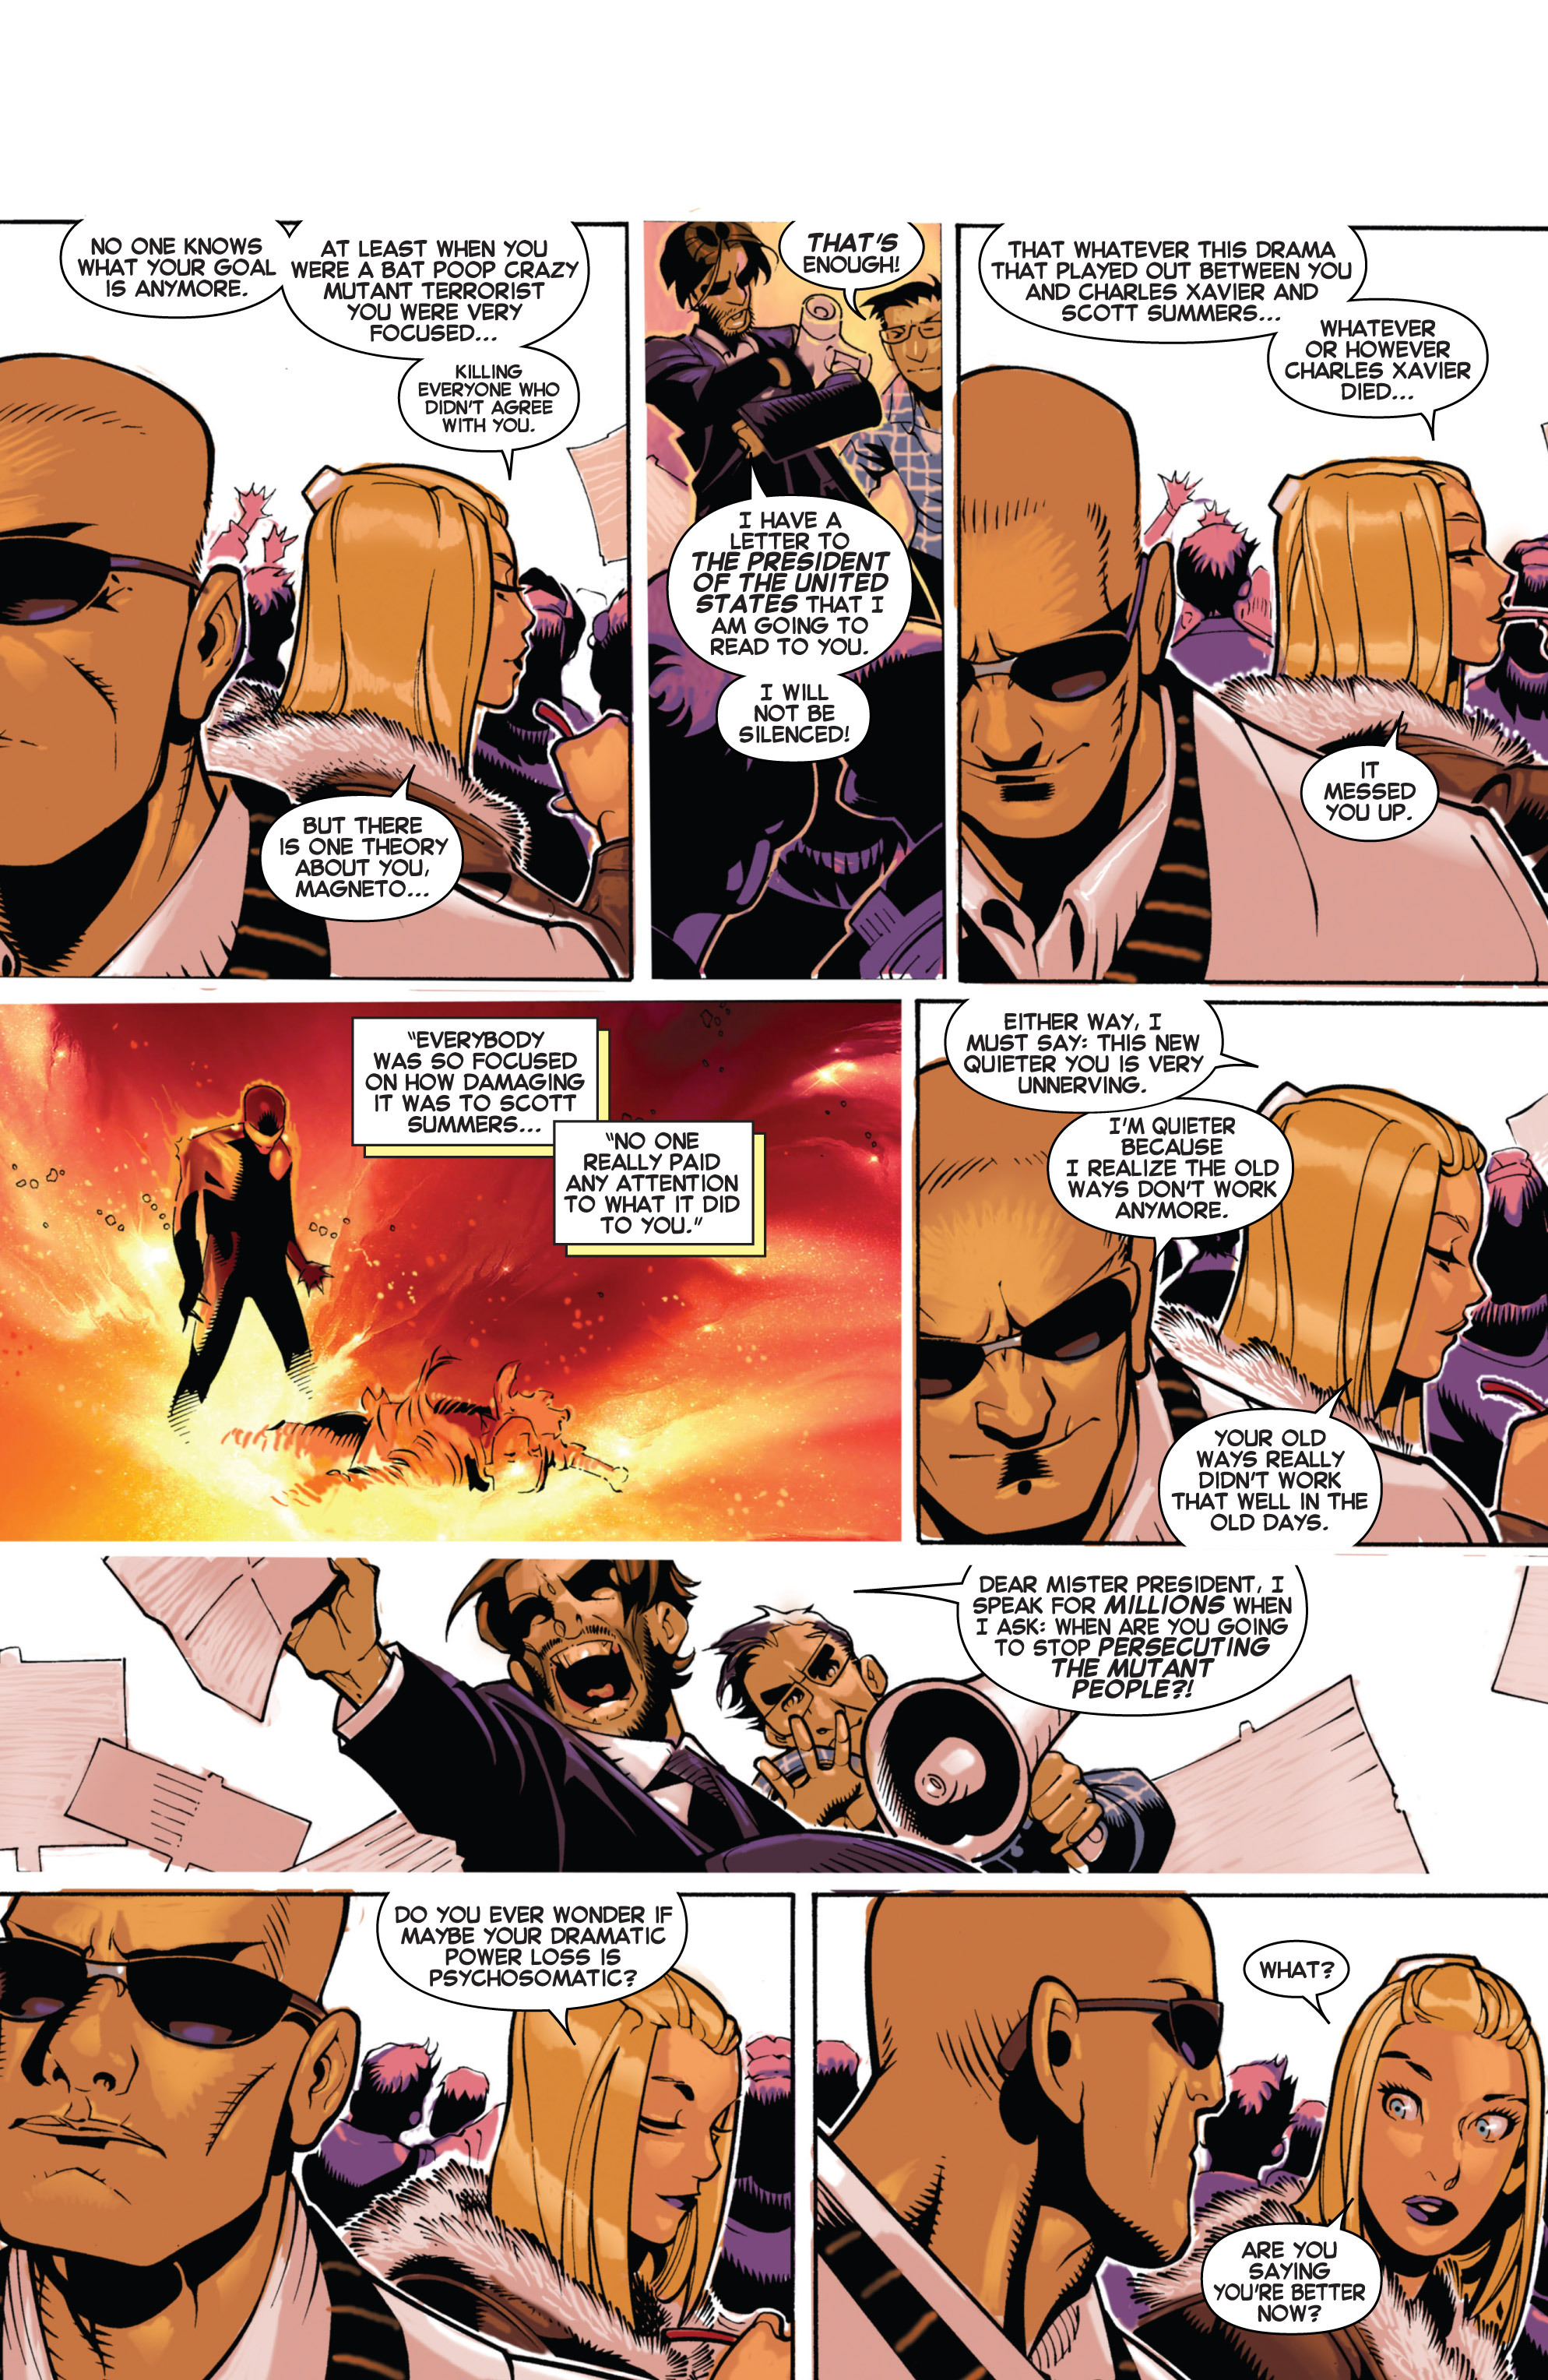 Read online Uncanny X-Men (2013) comic -  Issue # _TPB 3 - The Good, The Bad, The Inhuman - 48